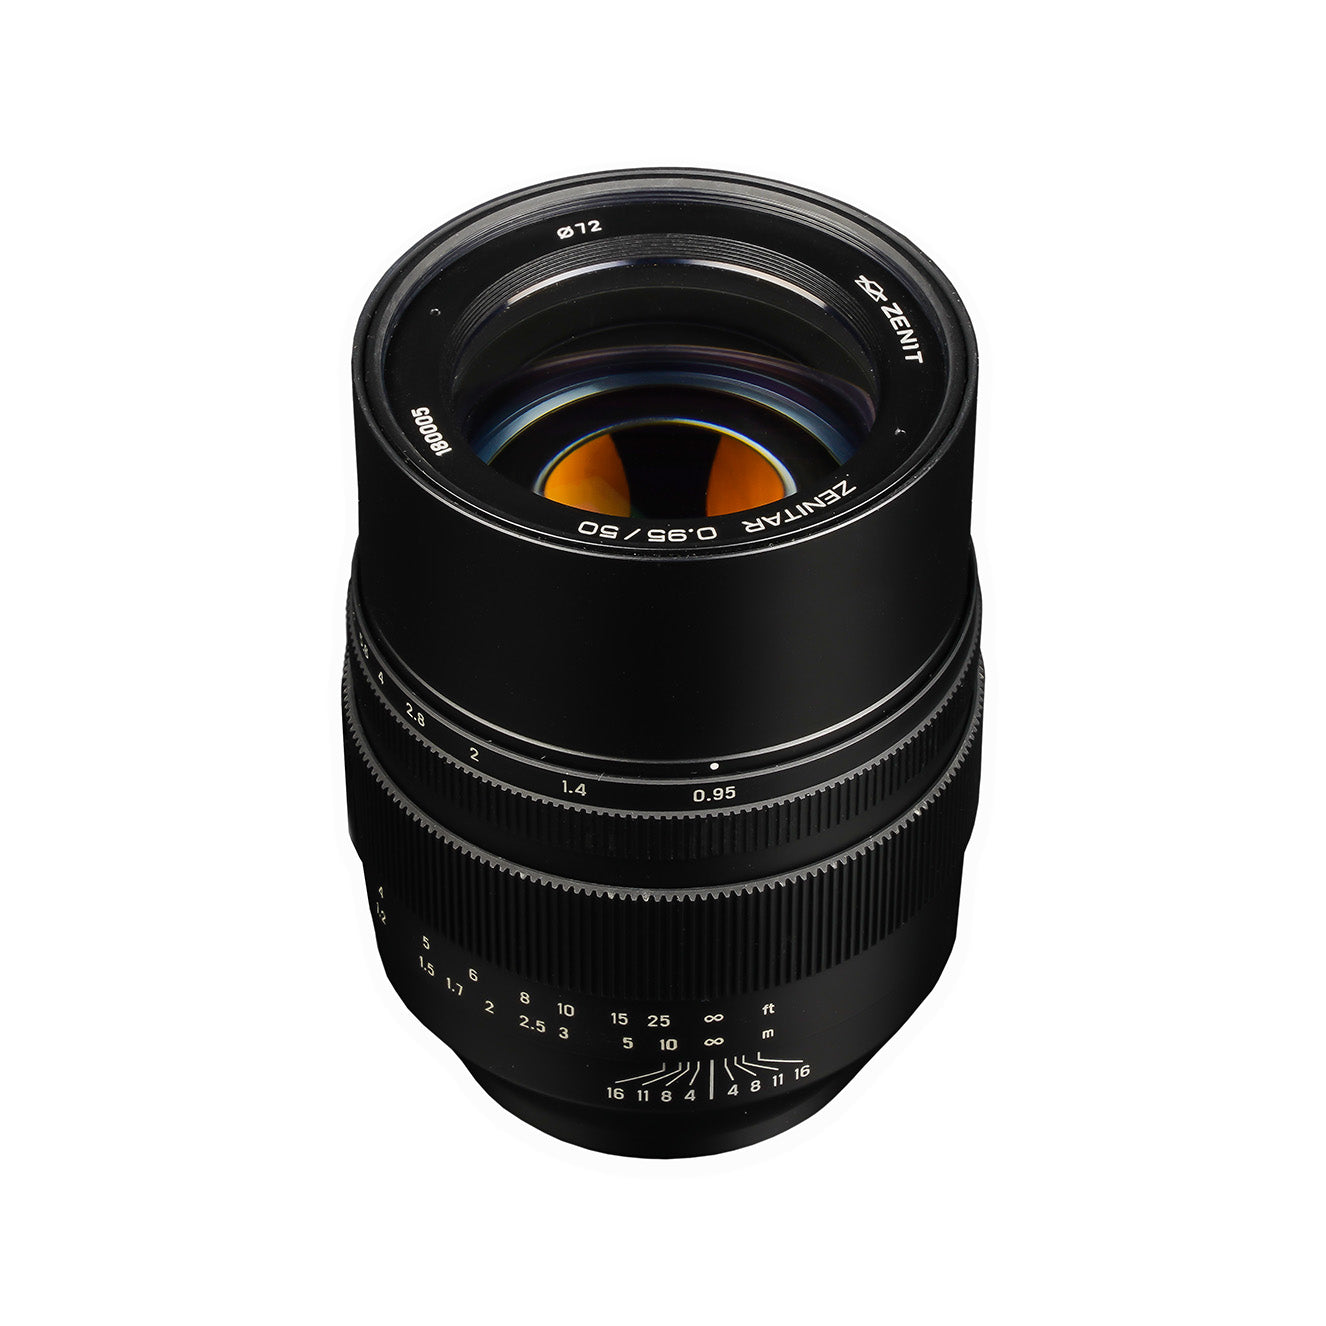 Zenitar 50mm f/0.95 lens for Sony E mount